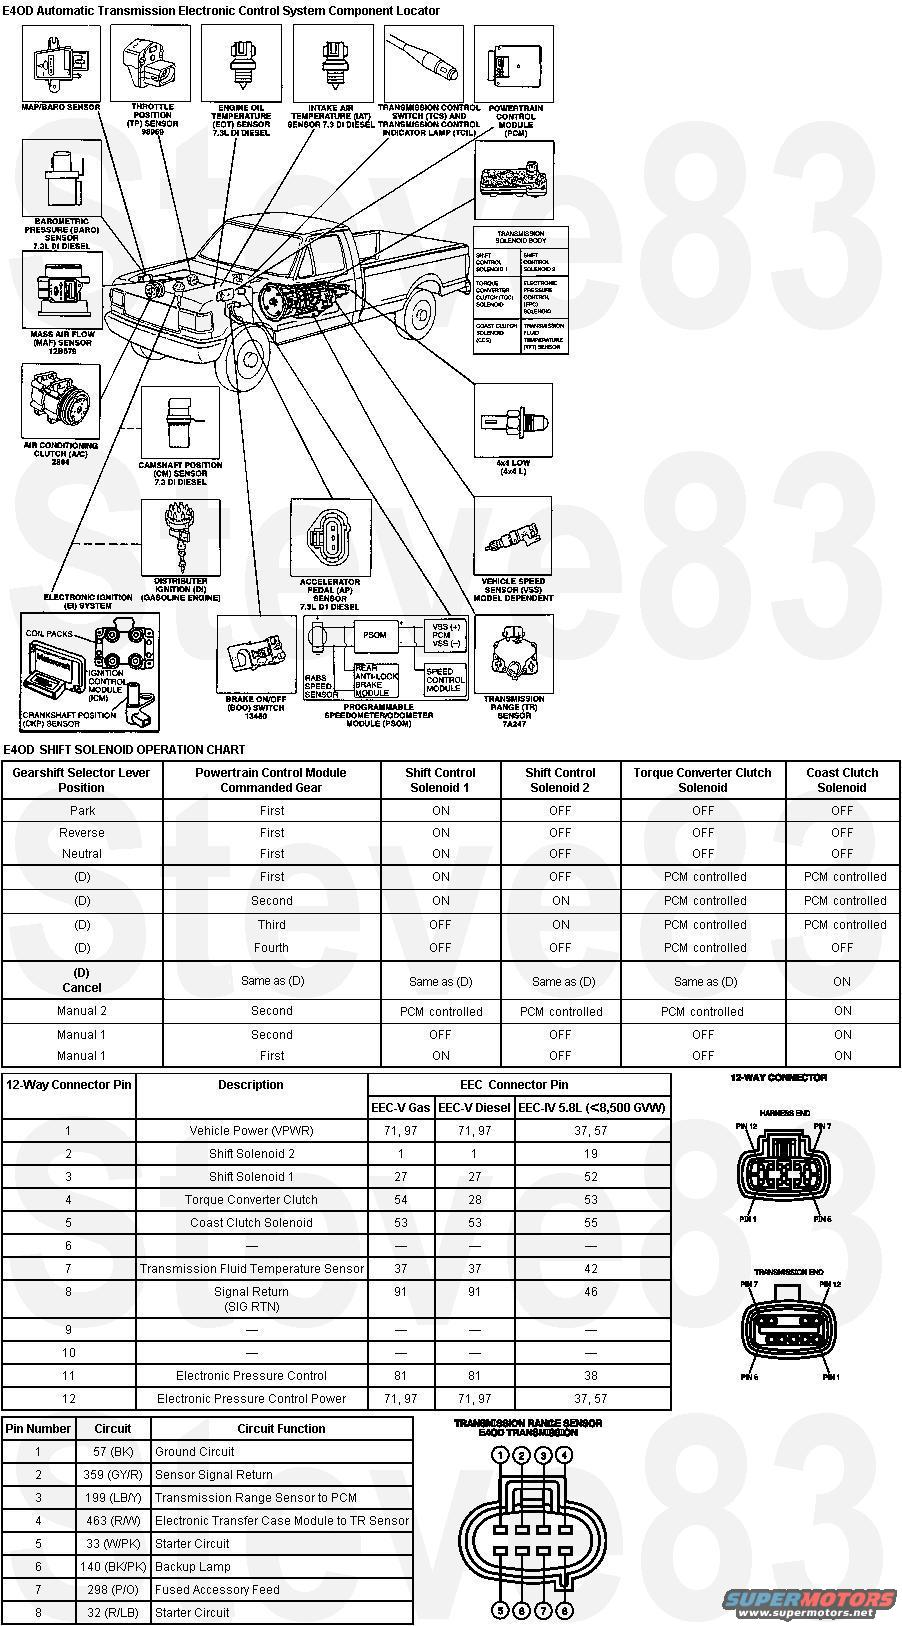 E Odsolenoidcharts on 1993 Ford Ranger Wiring Diagram